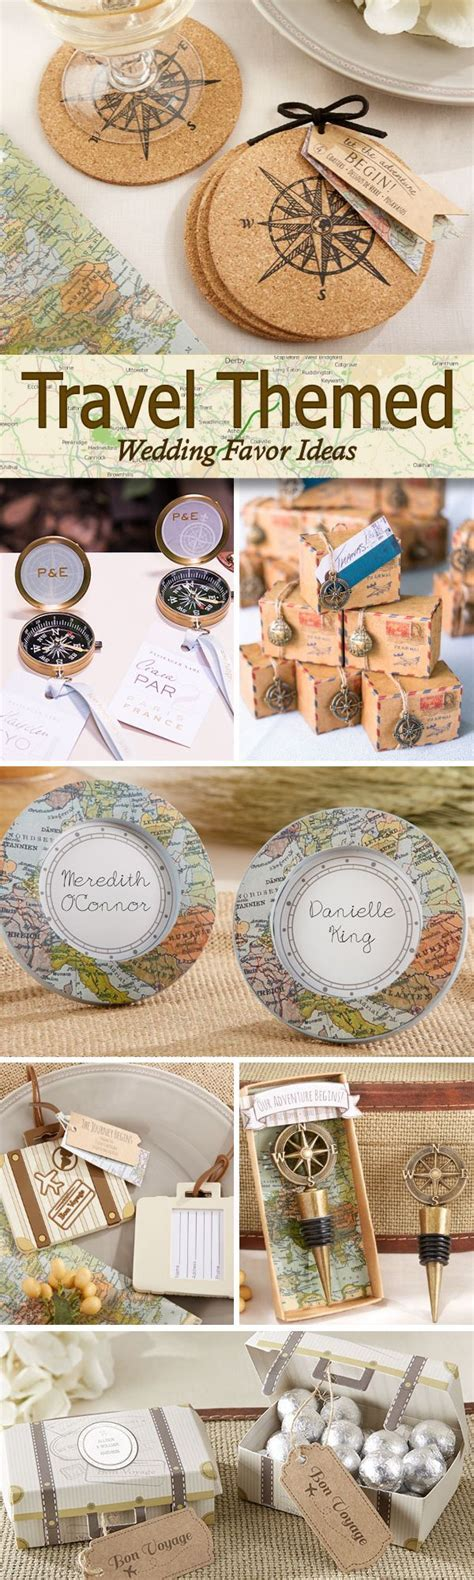 Having a wanderlust or travel inspired wedding? Check out